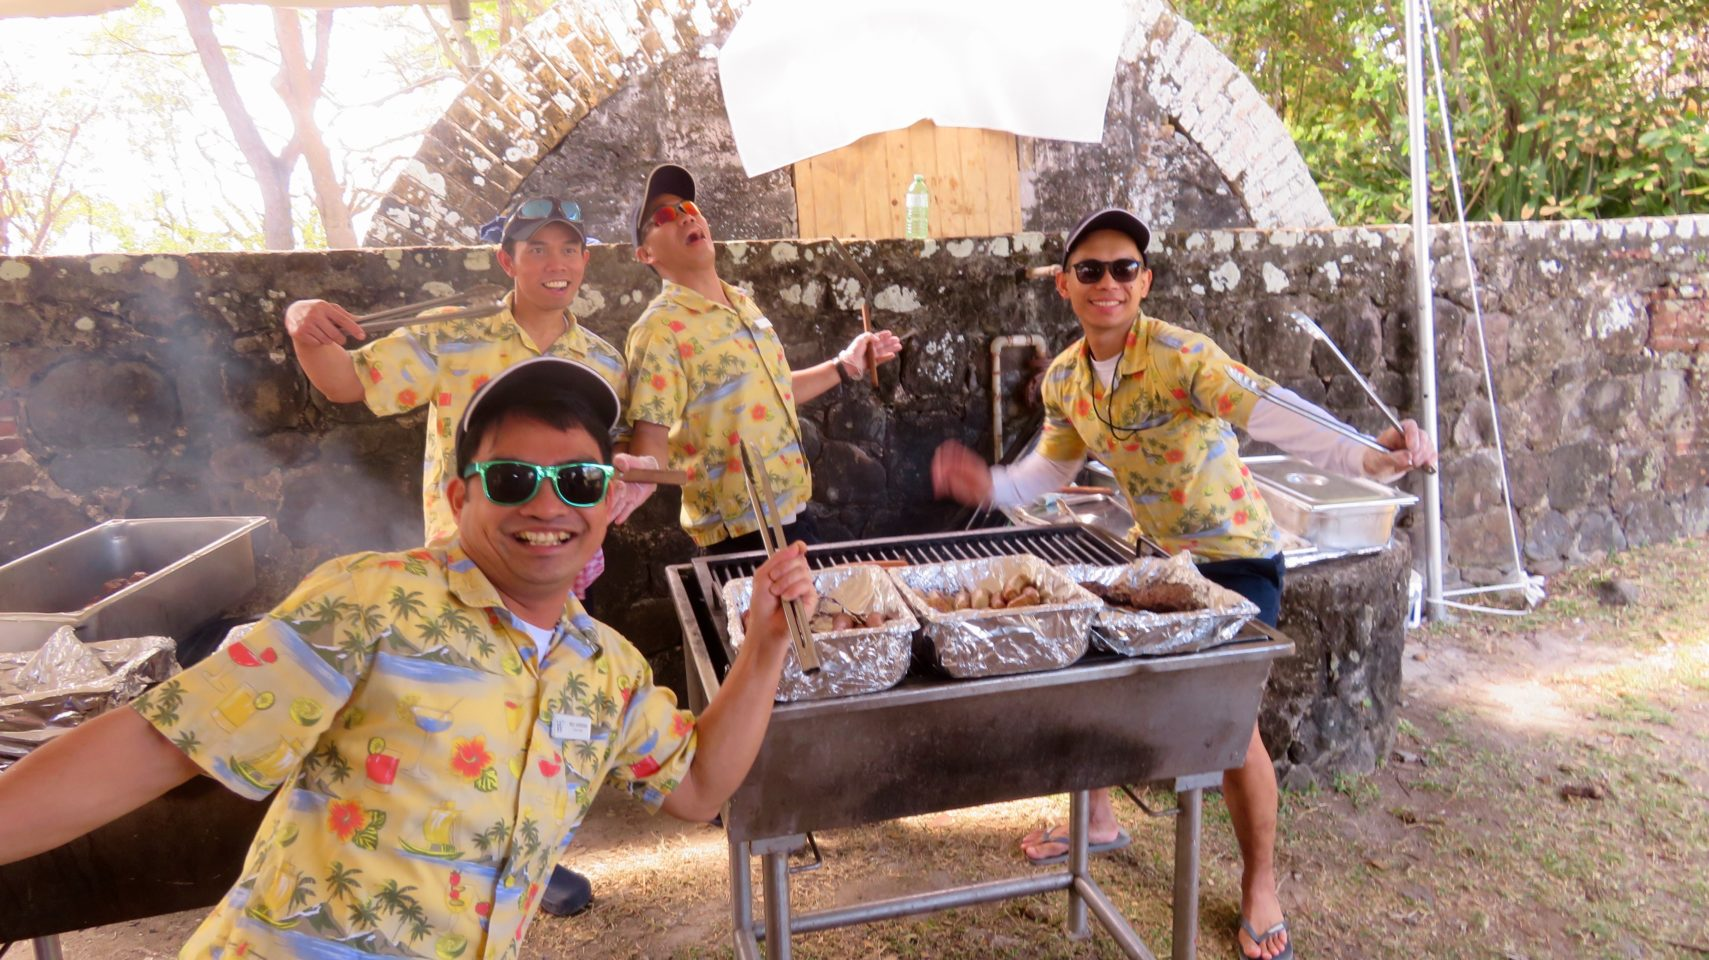 Windstar Cruises ~ my favorite restaurant servers posing with panche at our Island Barbeque, a Windstar tradition